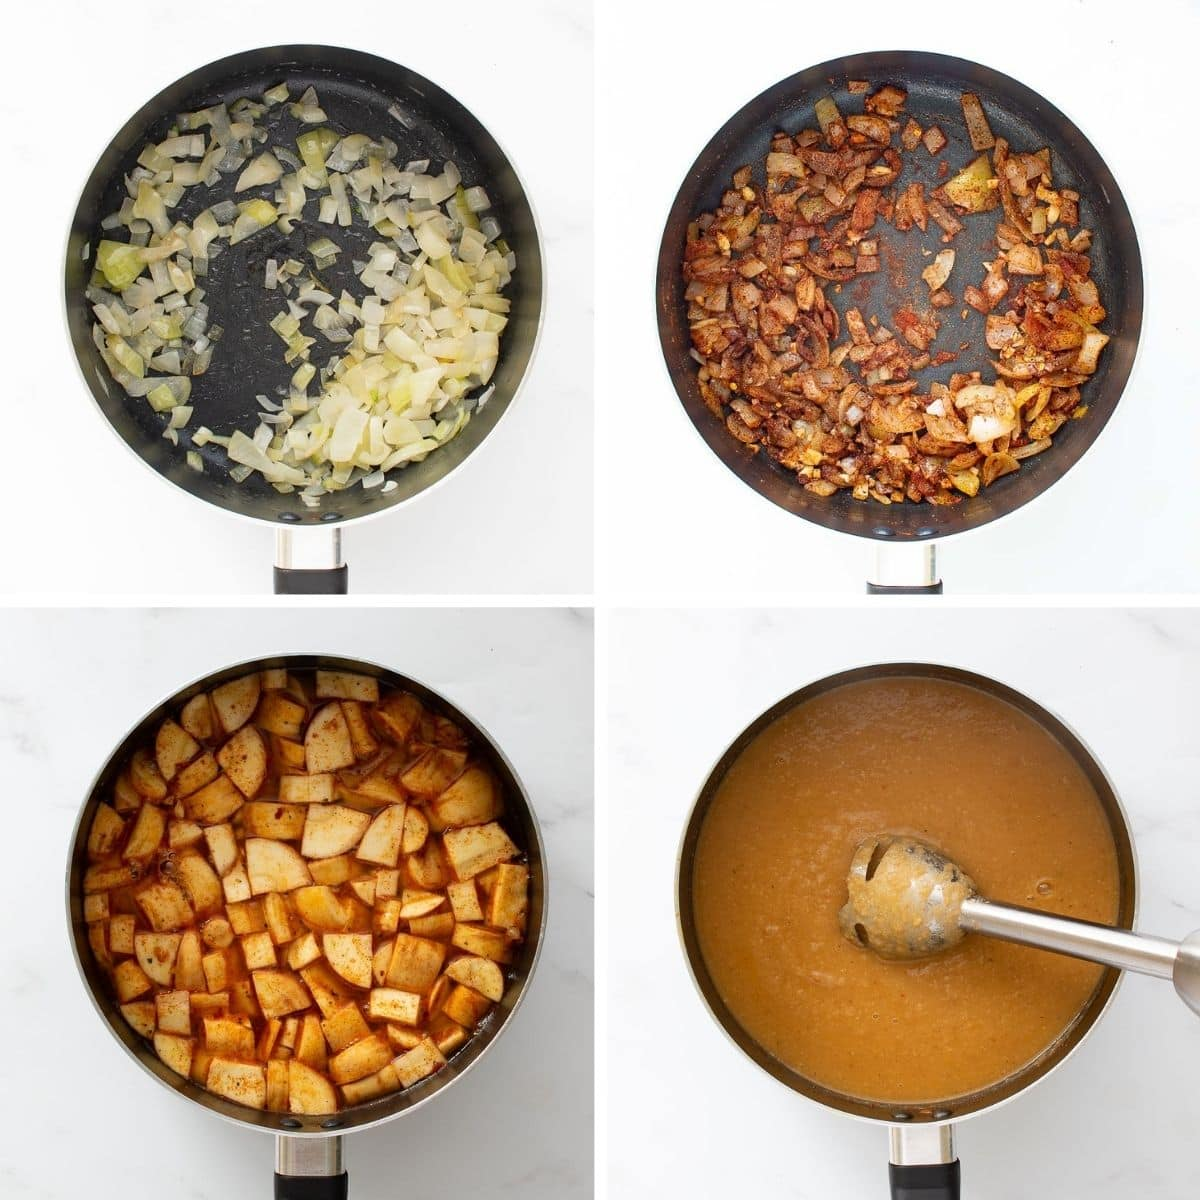 Step by step images showing how to make spicy parsnip soup with red pepper flakes.